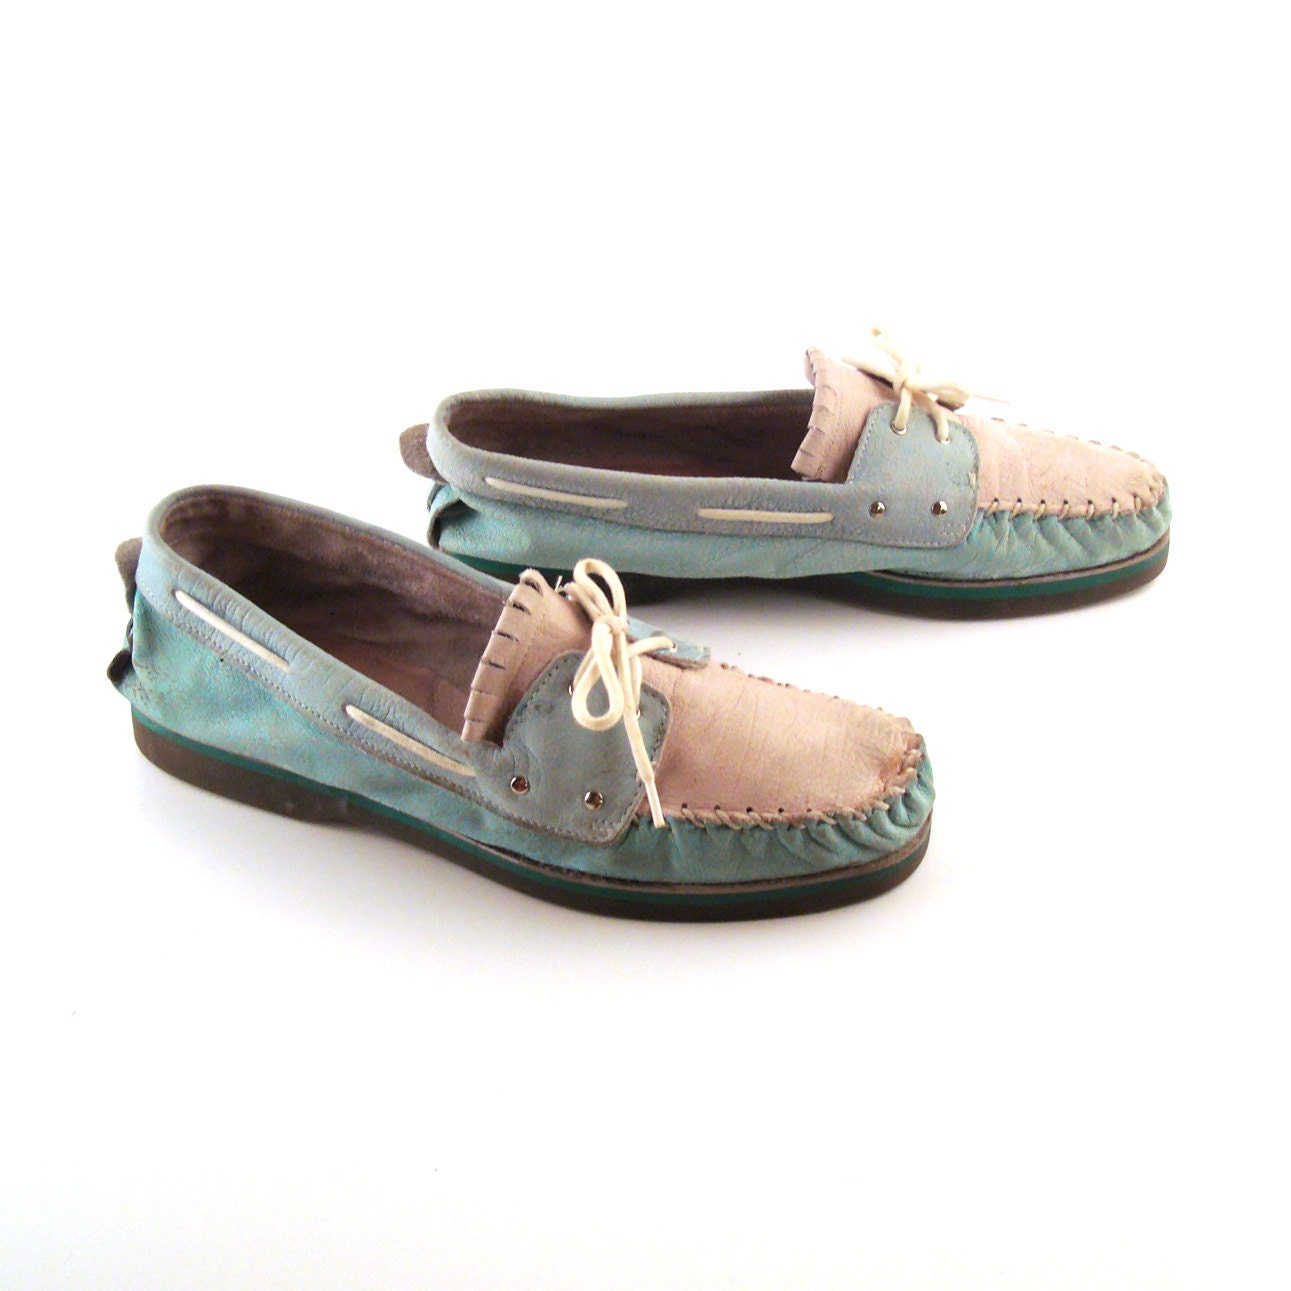 Bass canvas boat shoes